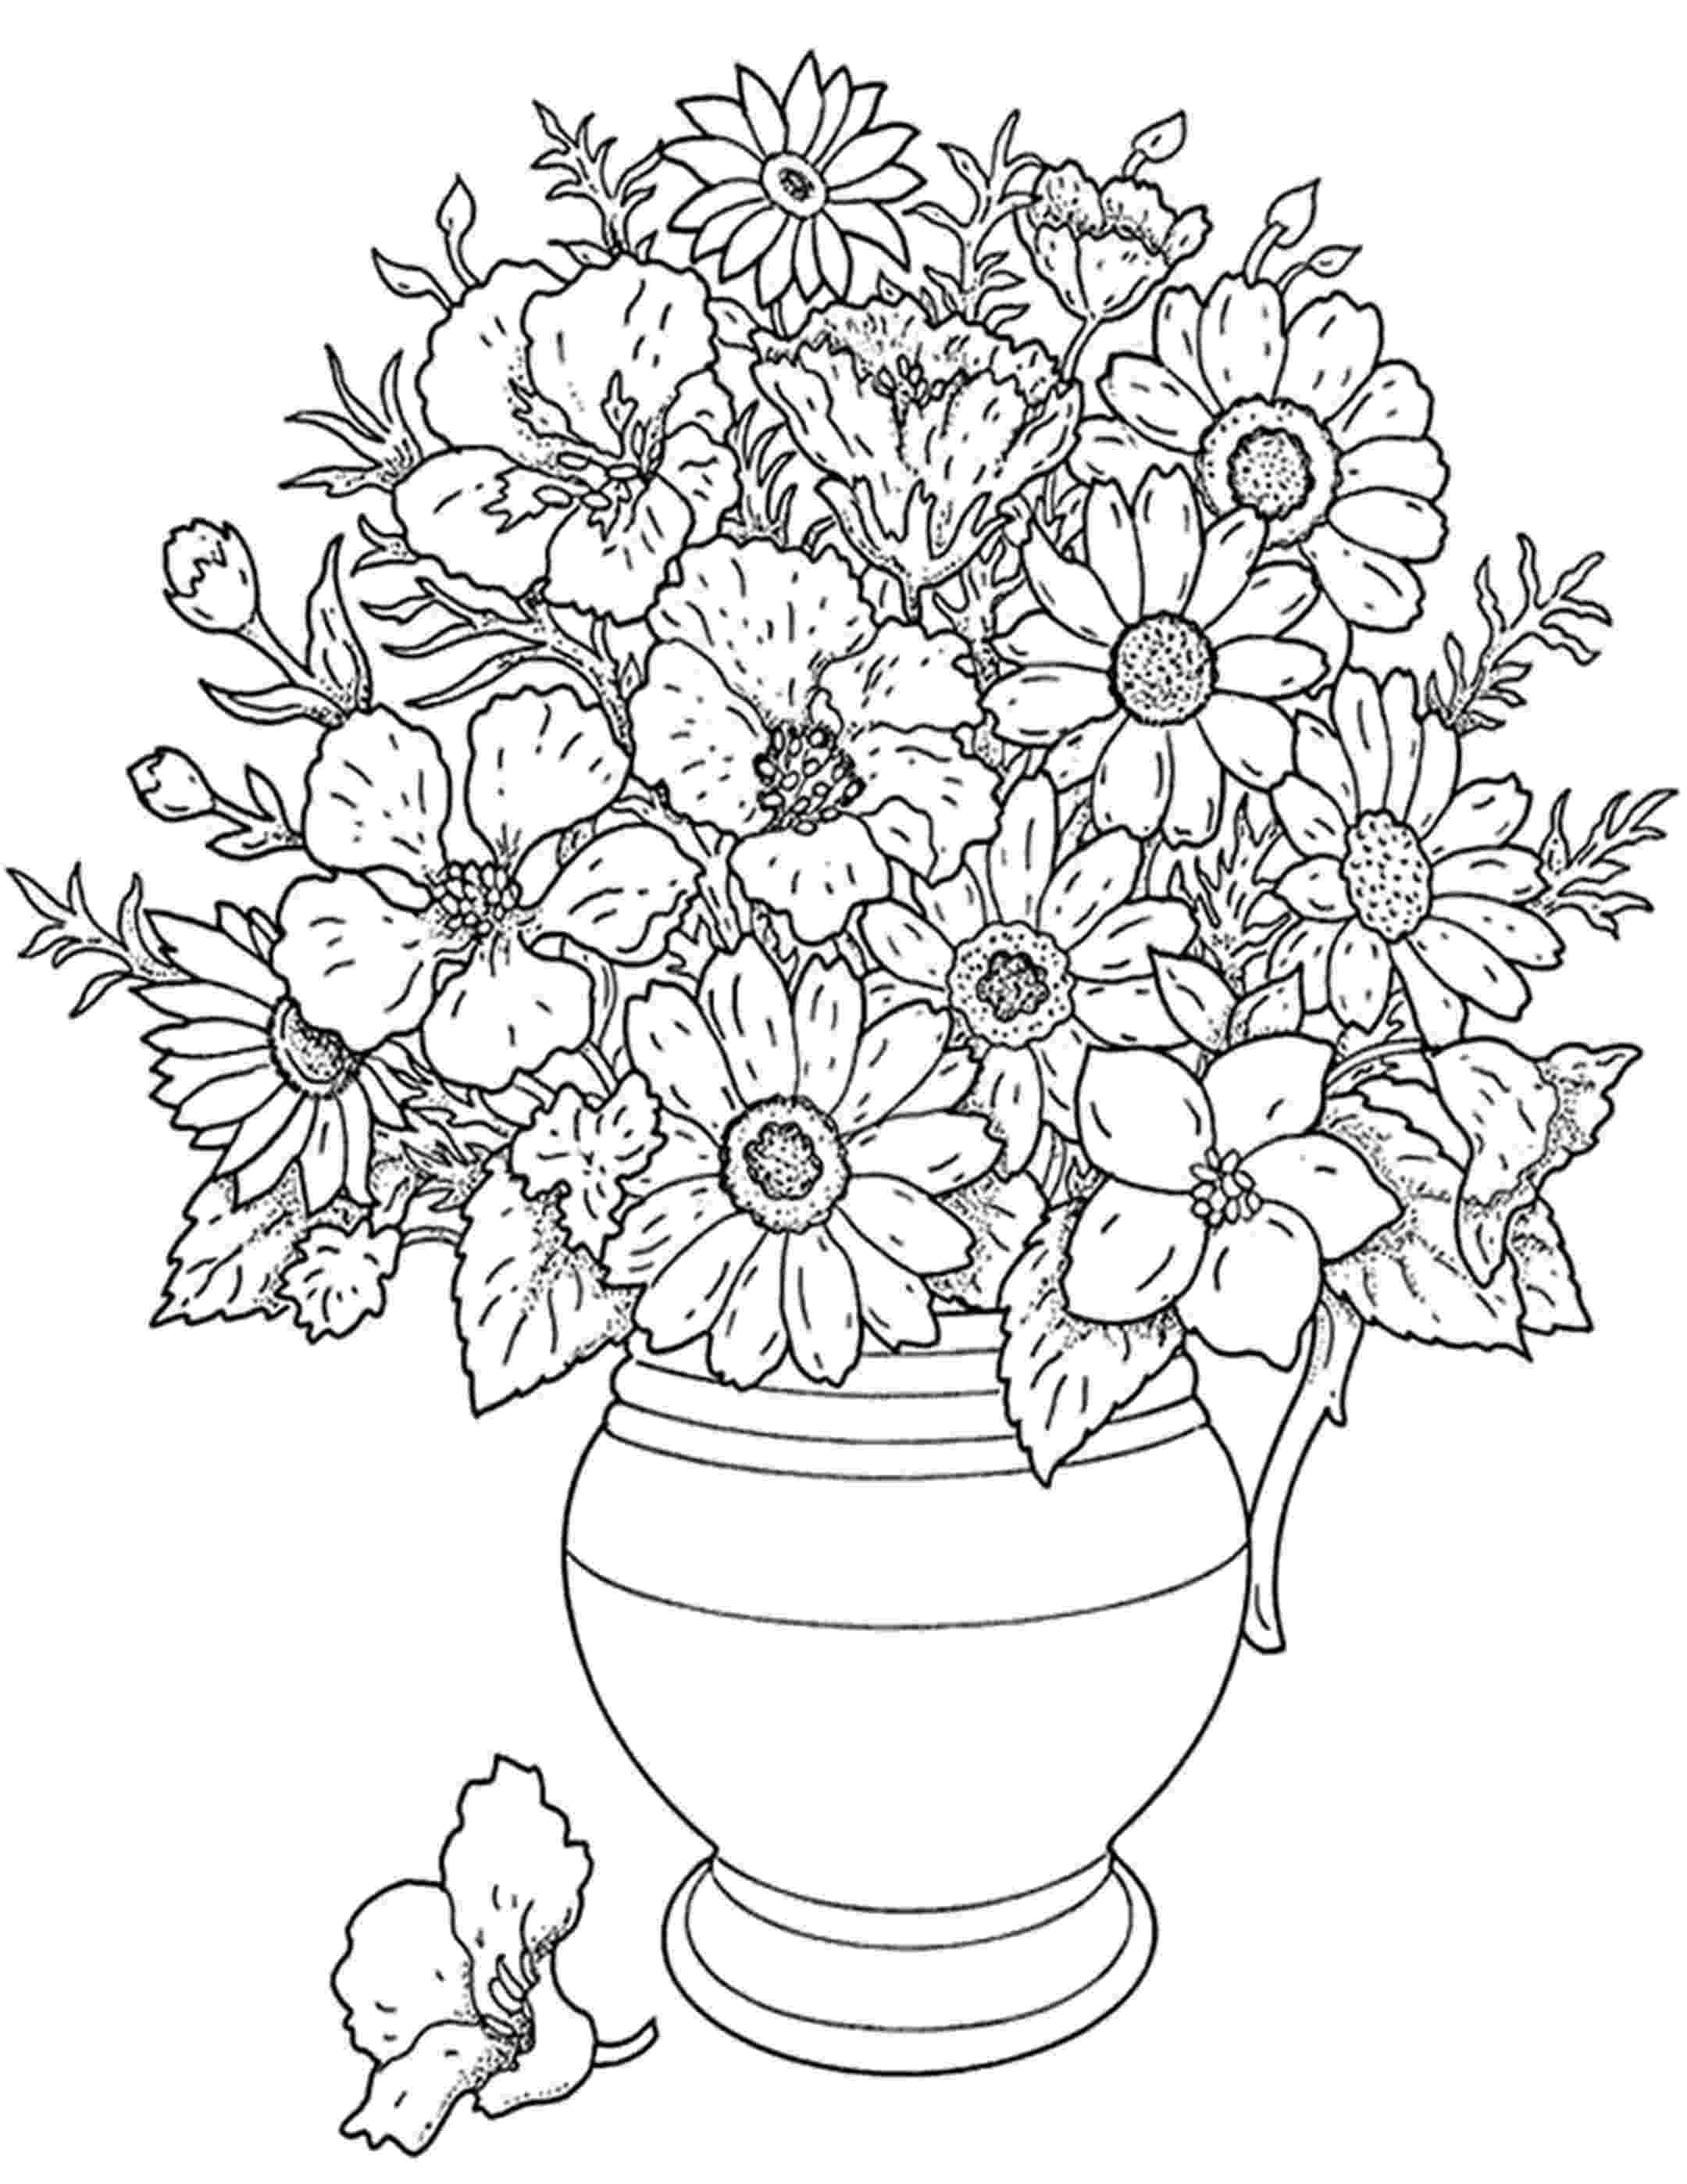 flowers coloring pages for kids free printable flower coloring pages for kids best pages for coloring kids flowers